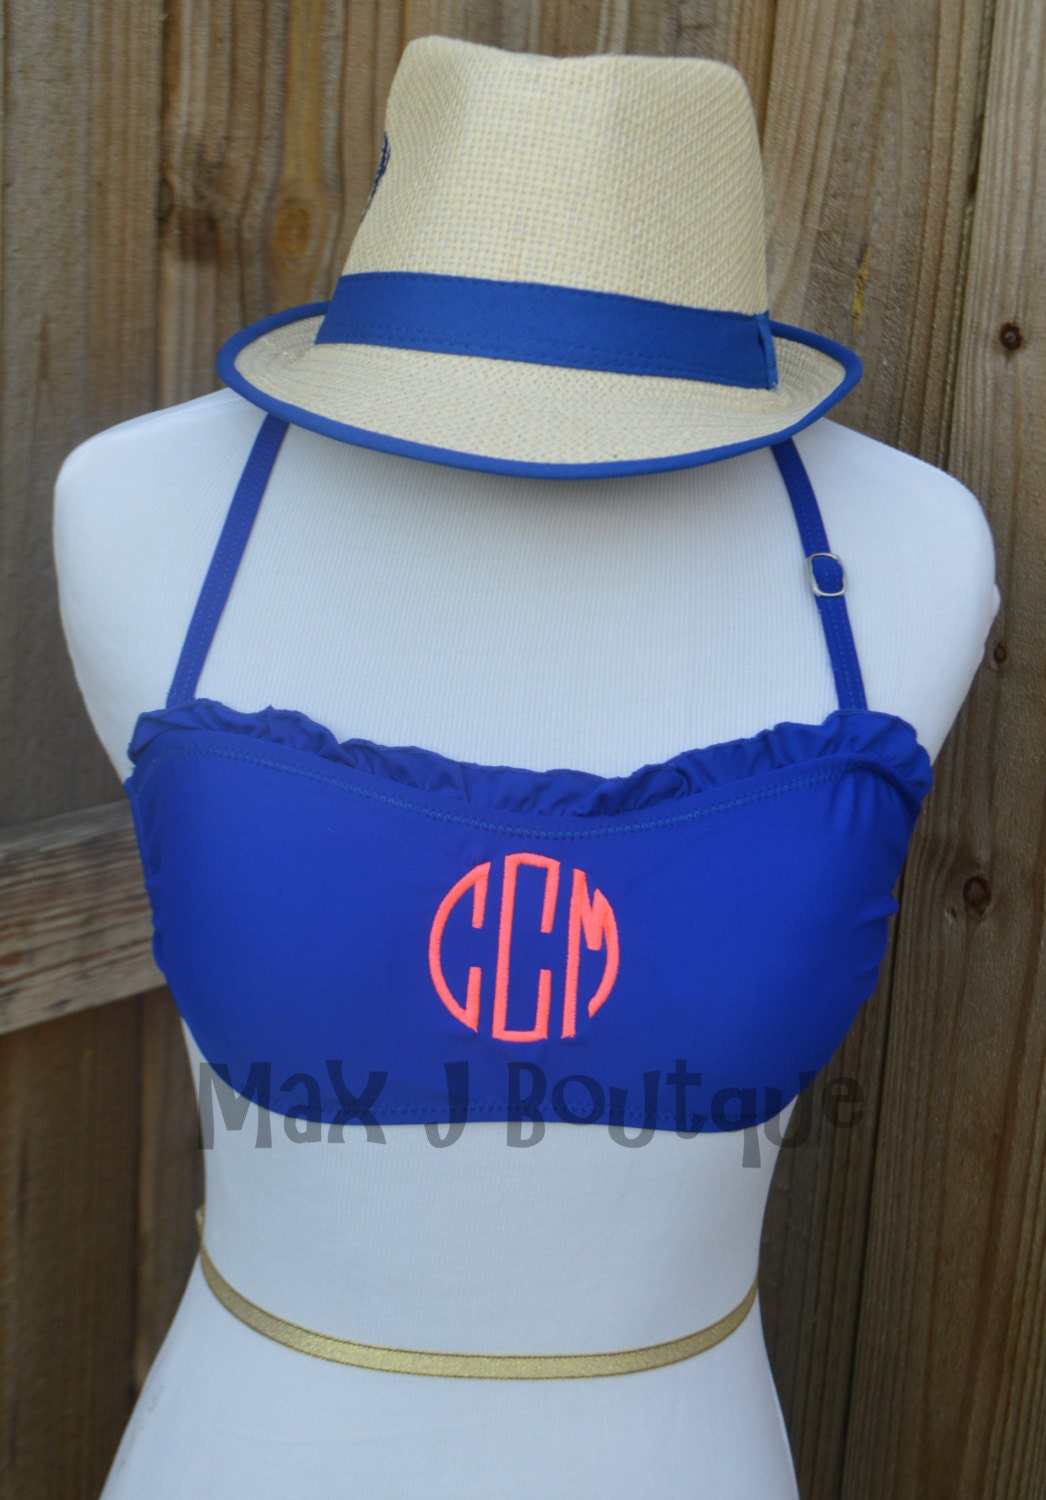 monogrammed ruffle bandeau bathing suit top swim suit top